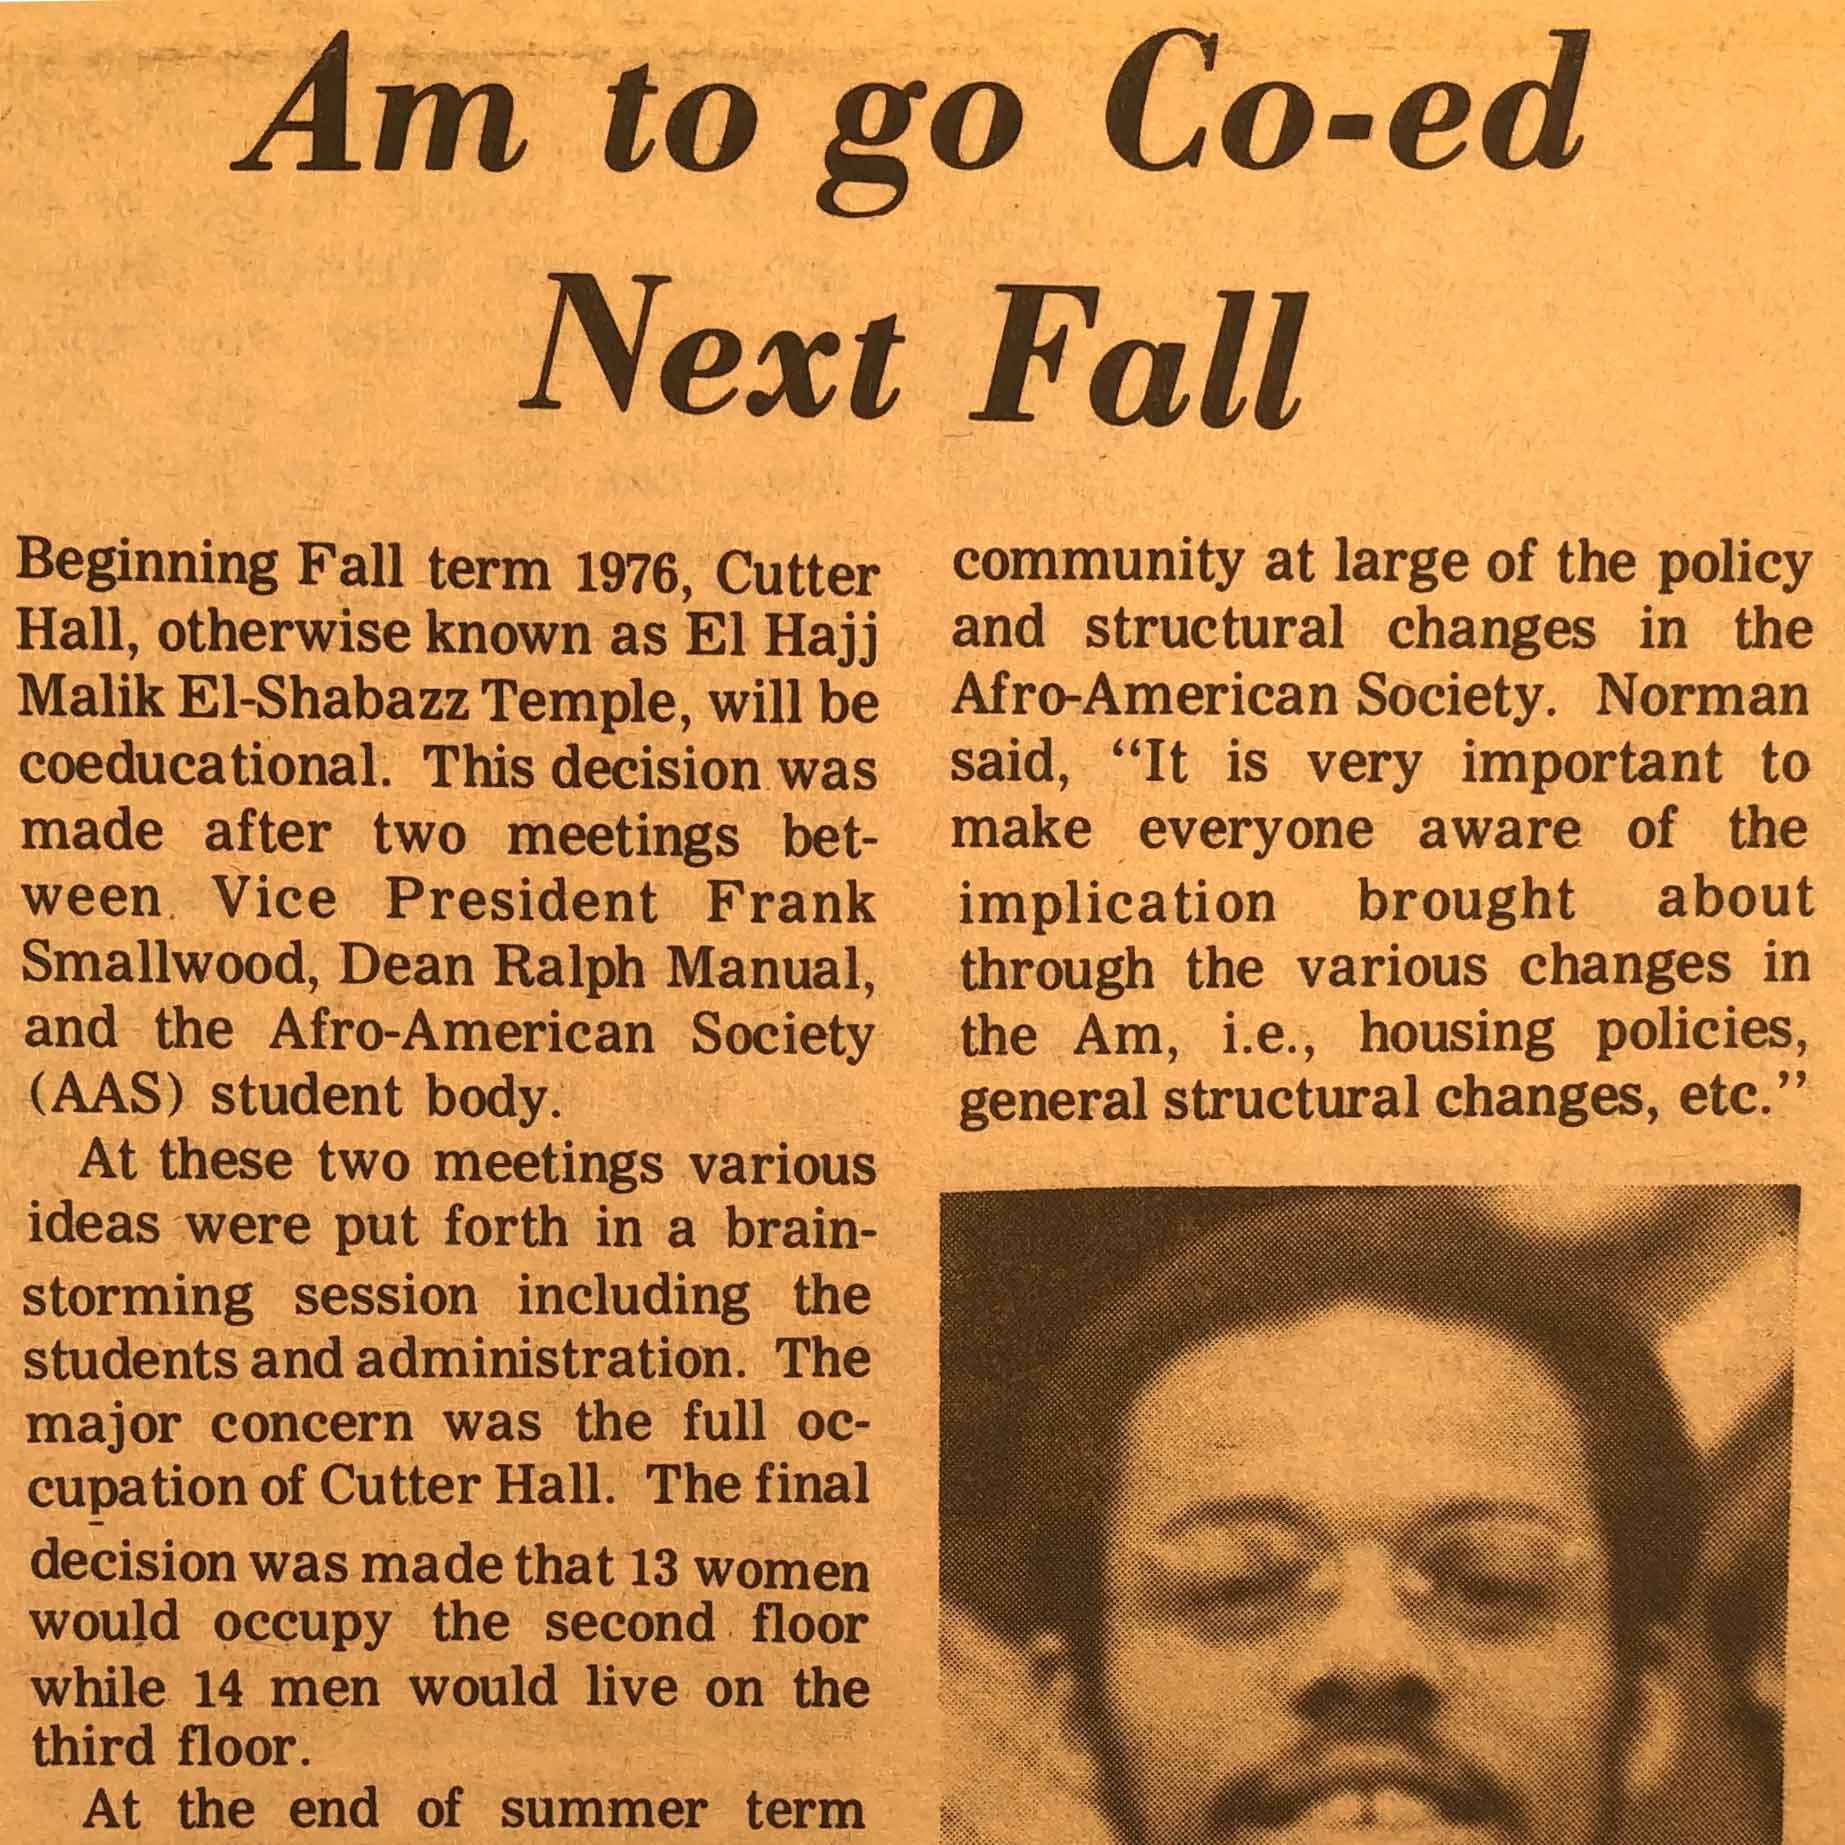 This article reports on the decision made by members of Dartmouth's Afro-American Society, Vice President Frank Smallwood, and Dean Ralph Manual to open 13 housing slots to women in the El Hajj Malik El-Shabazz Temple beginning in the Fall 1976, three years after the College became co-educational.